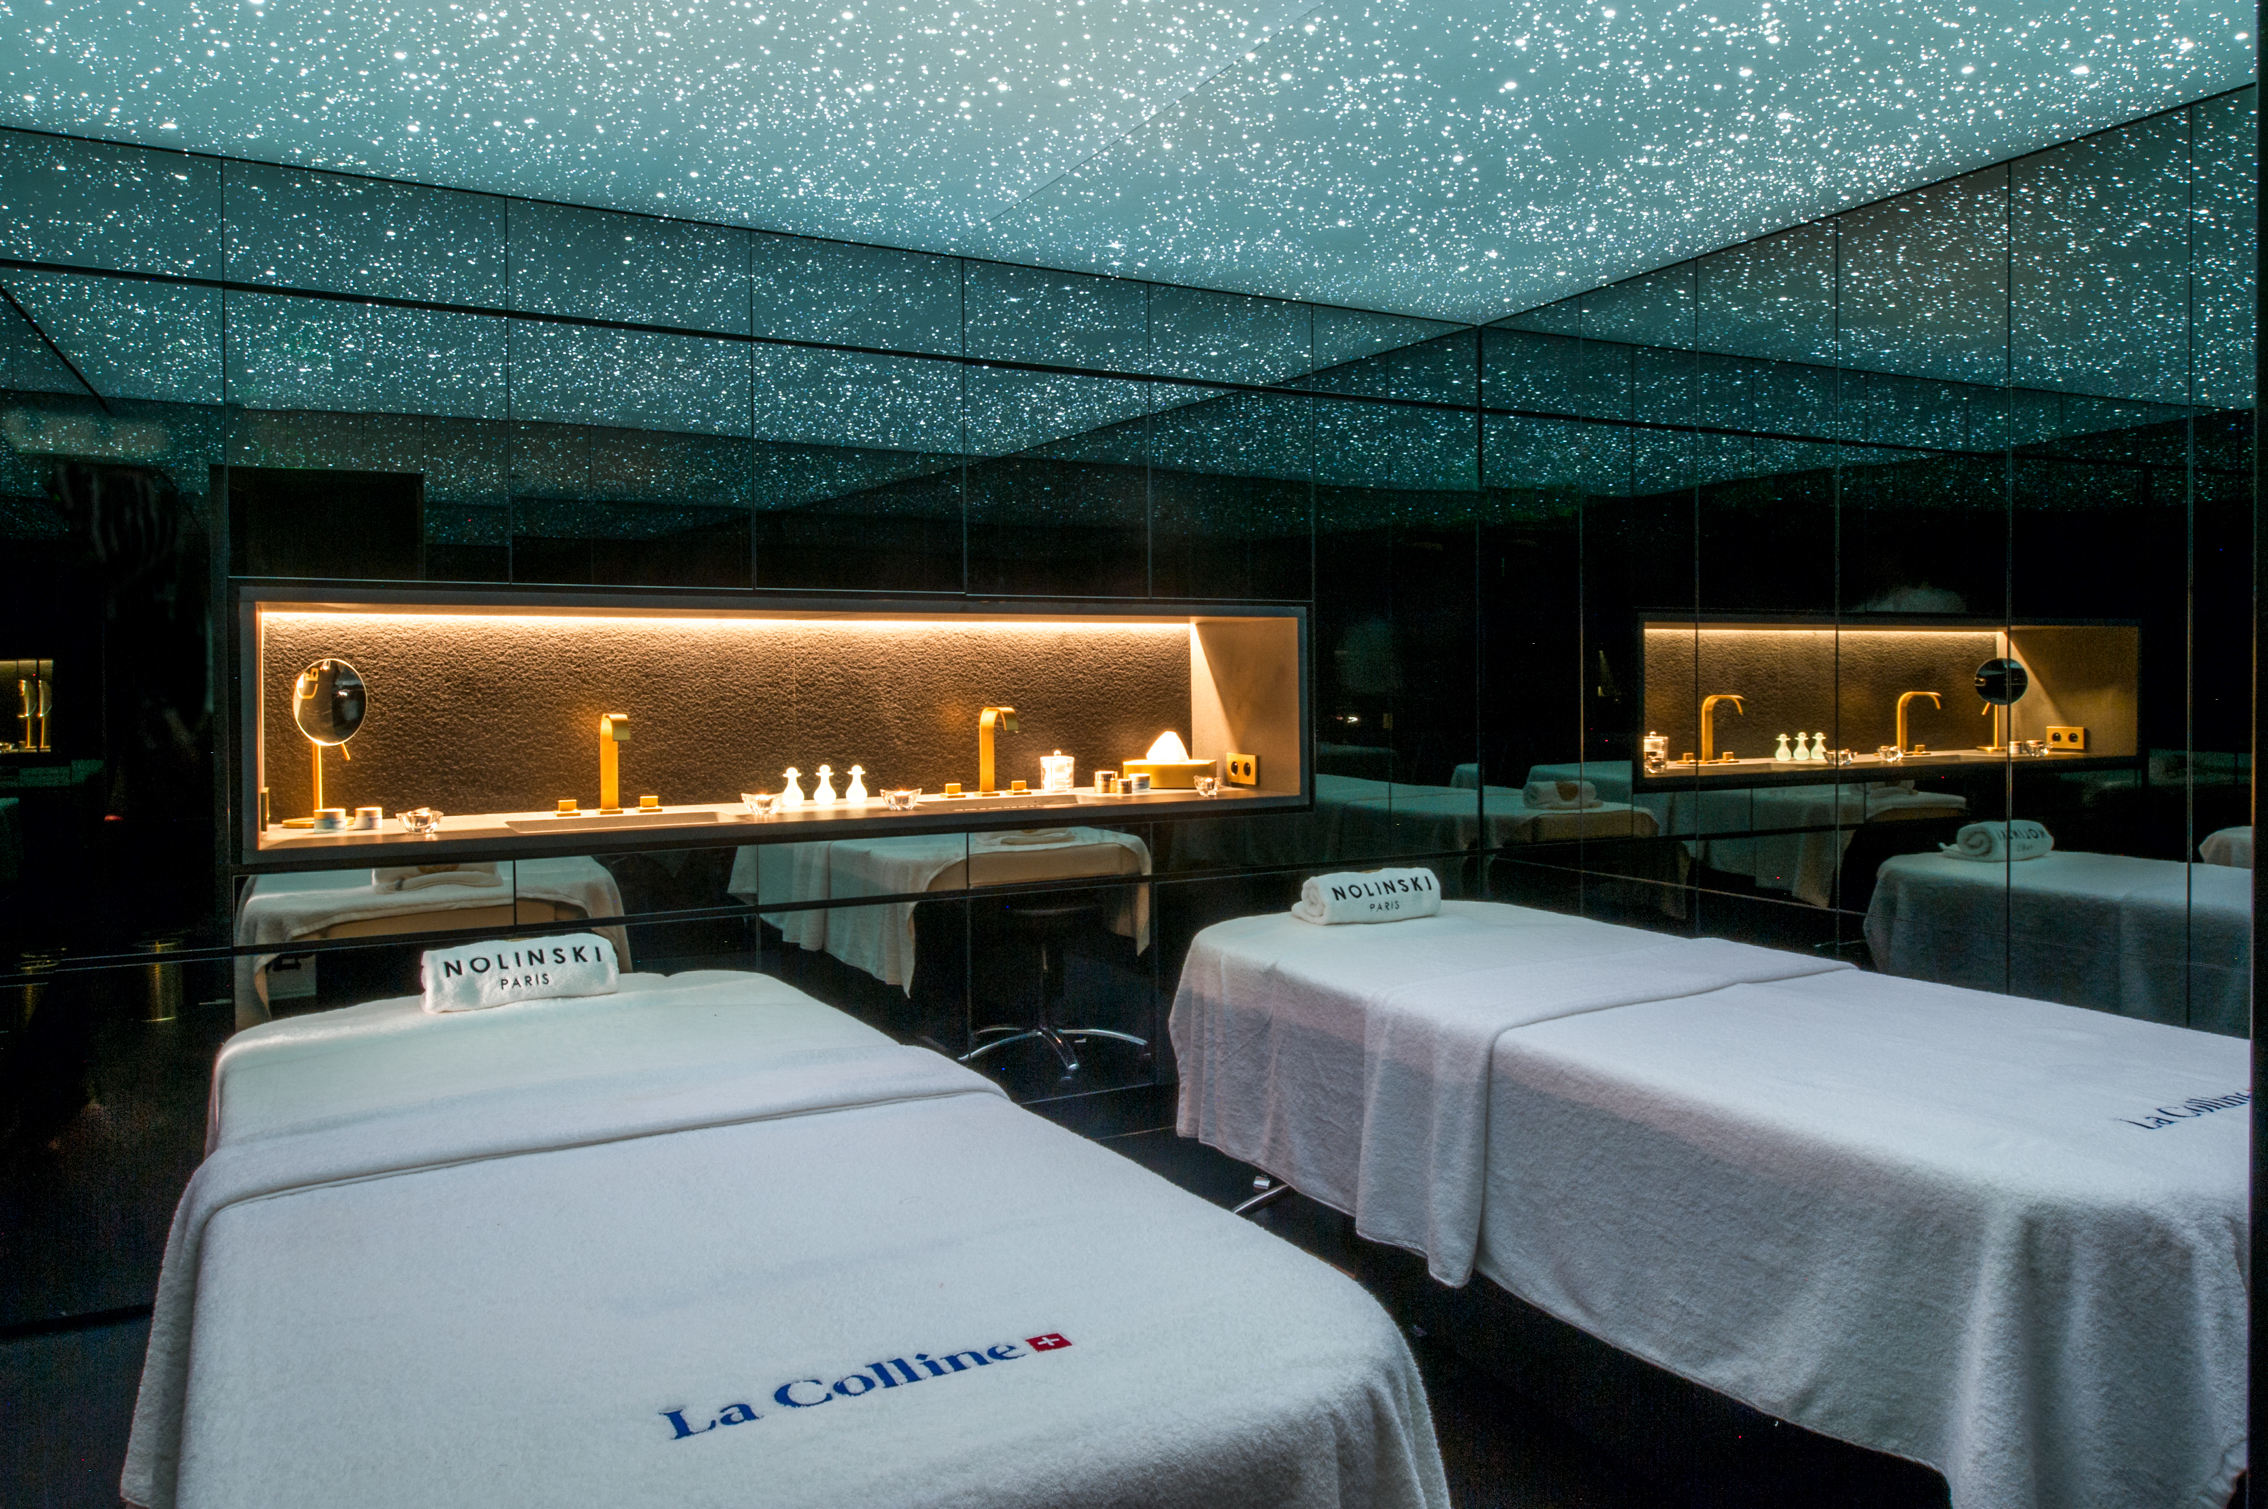 Nolinski Paris - Hotel Spa by La Colline